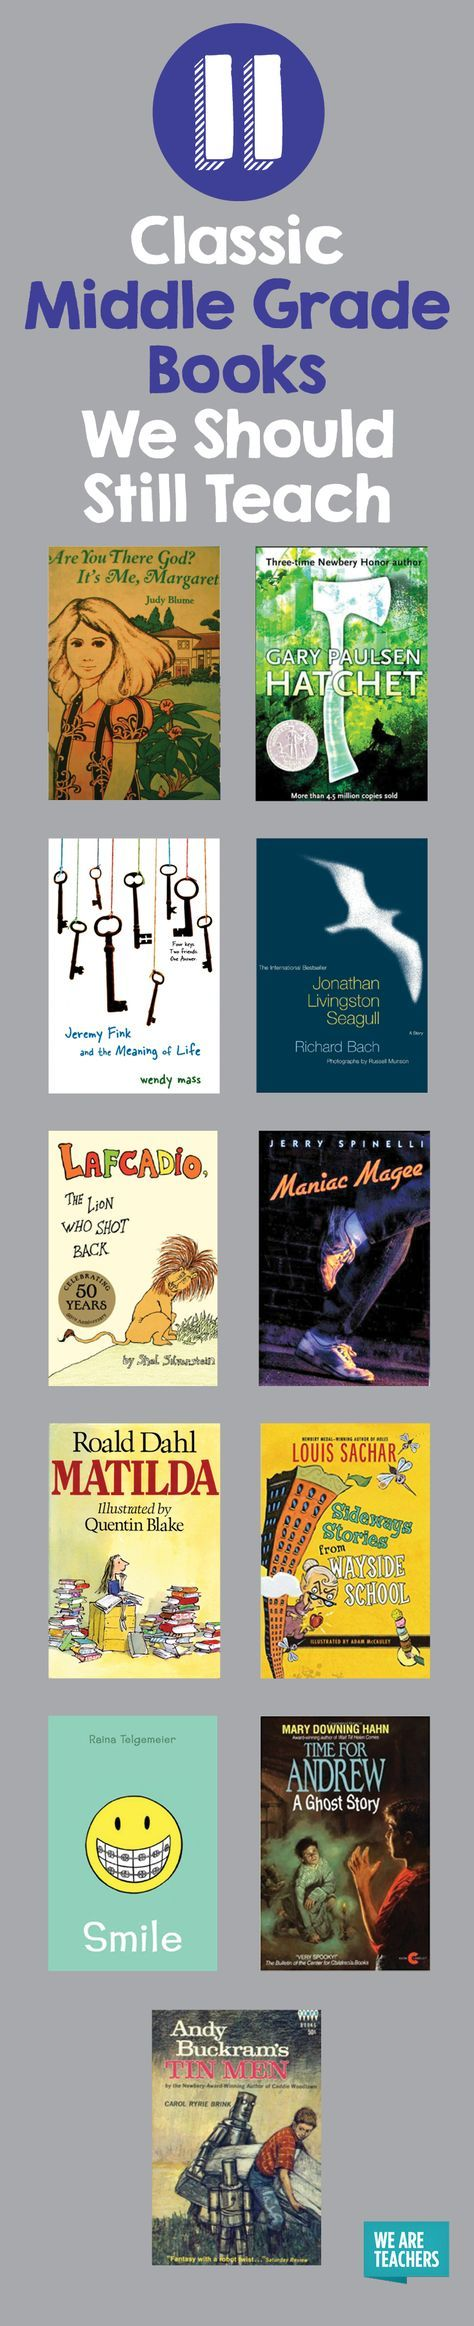 31 best inquiry texts images on pinterest kid books baby books 11 classic middle grade books we should still teach fandeluxe Gallery